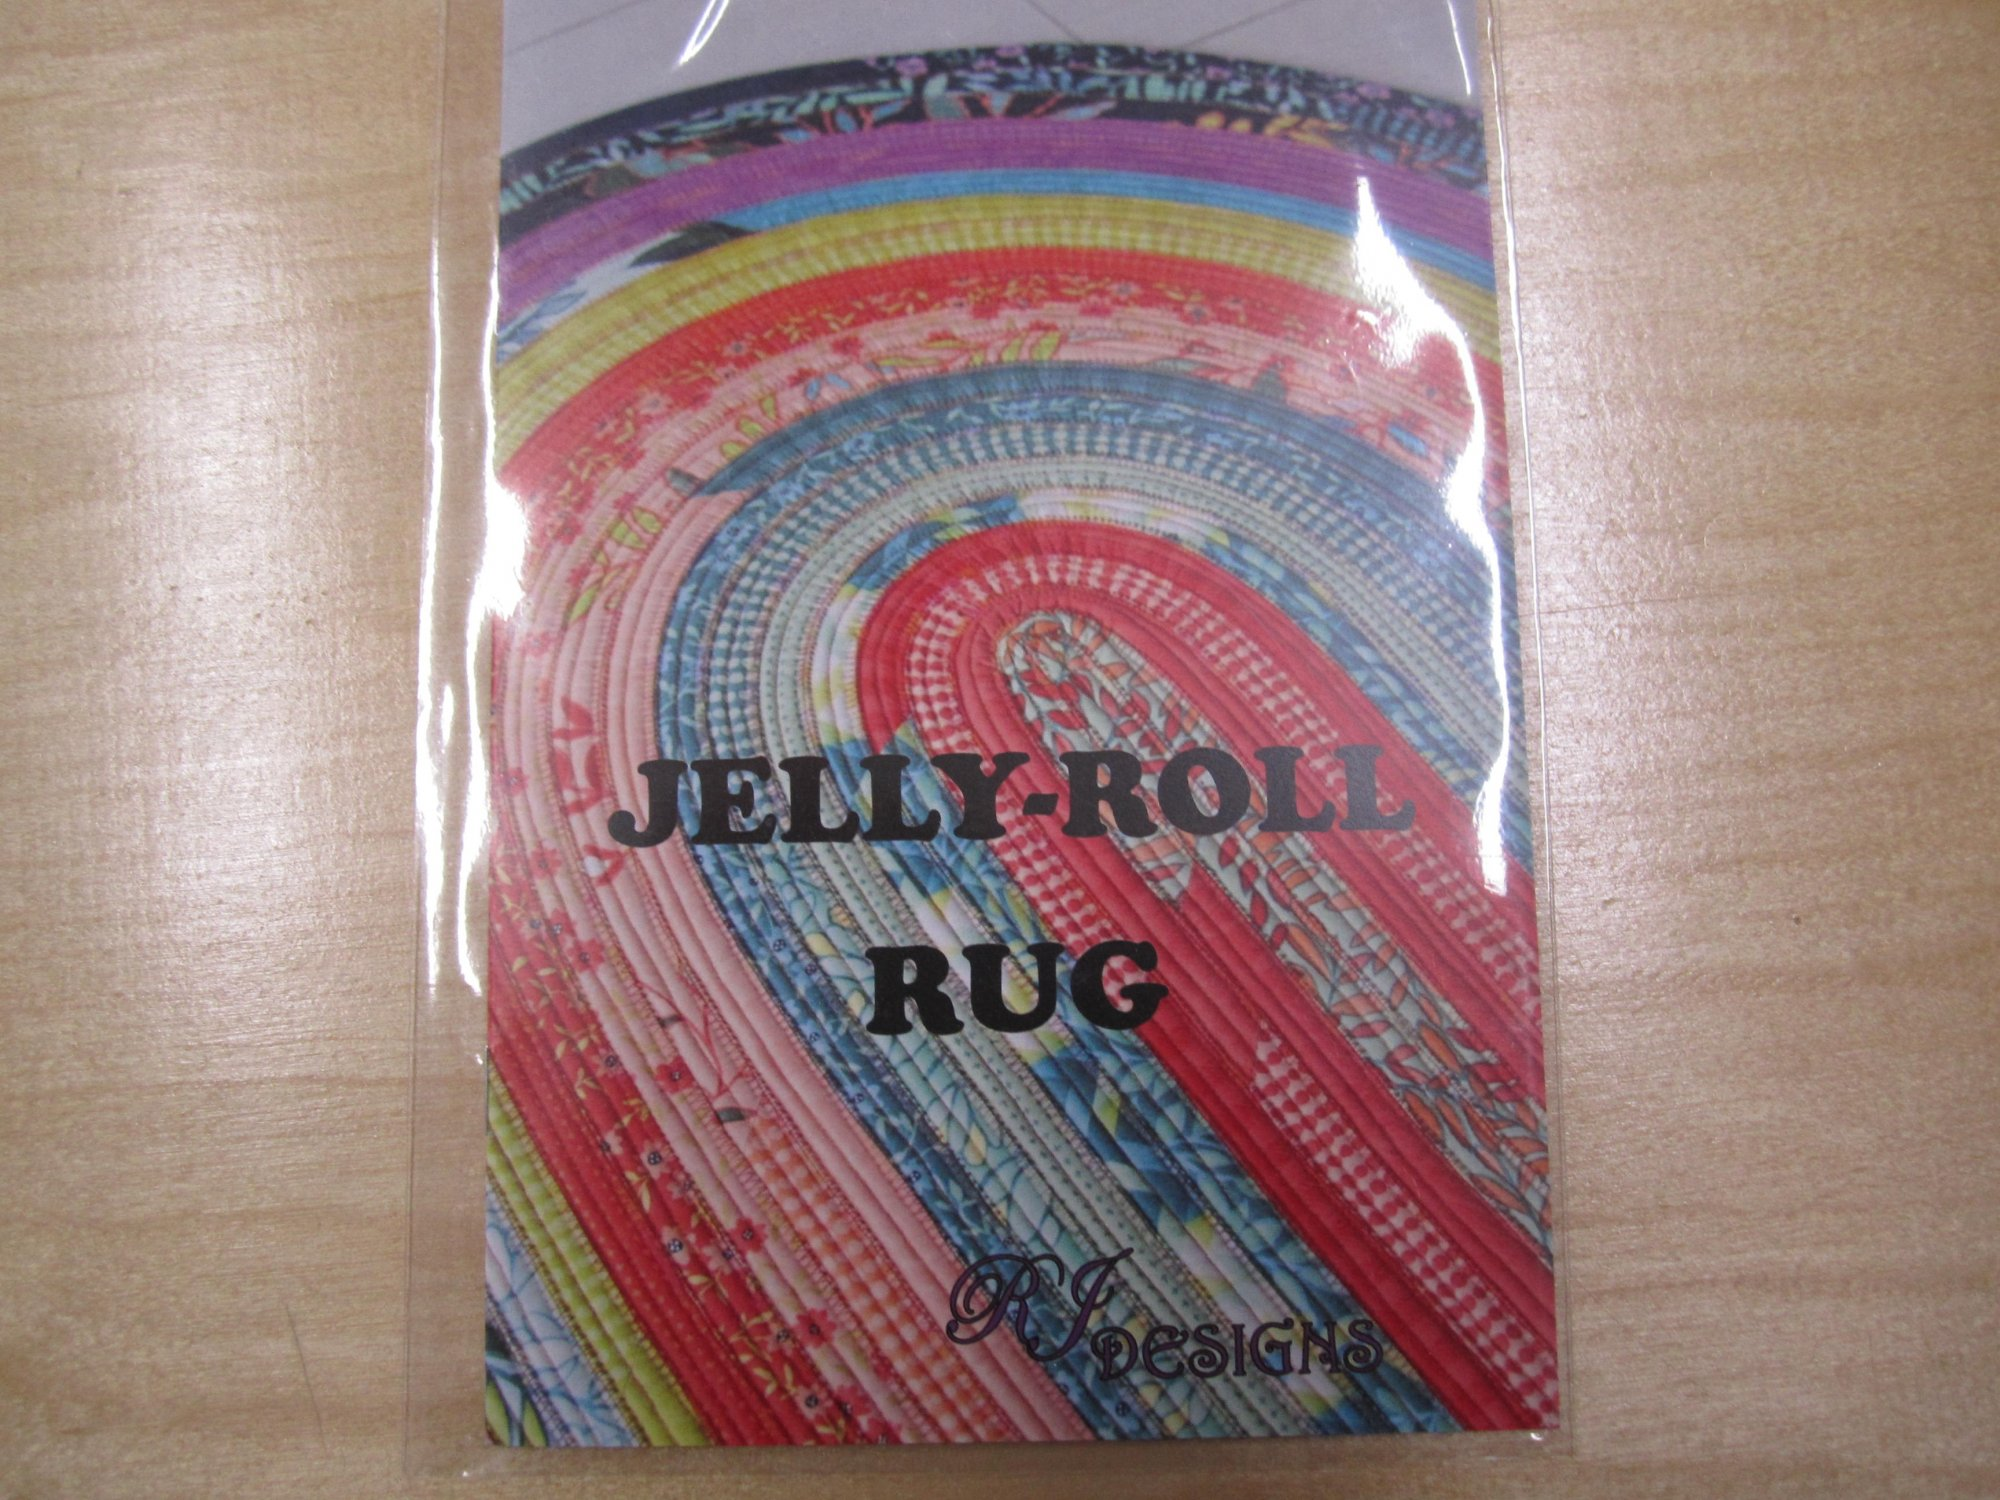 Jelly-Roll Rug